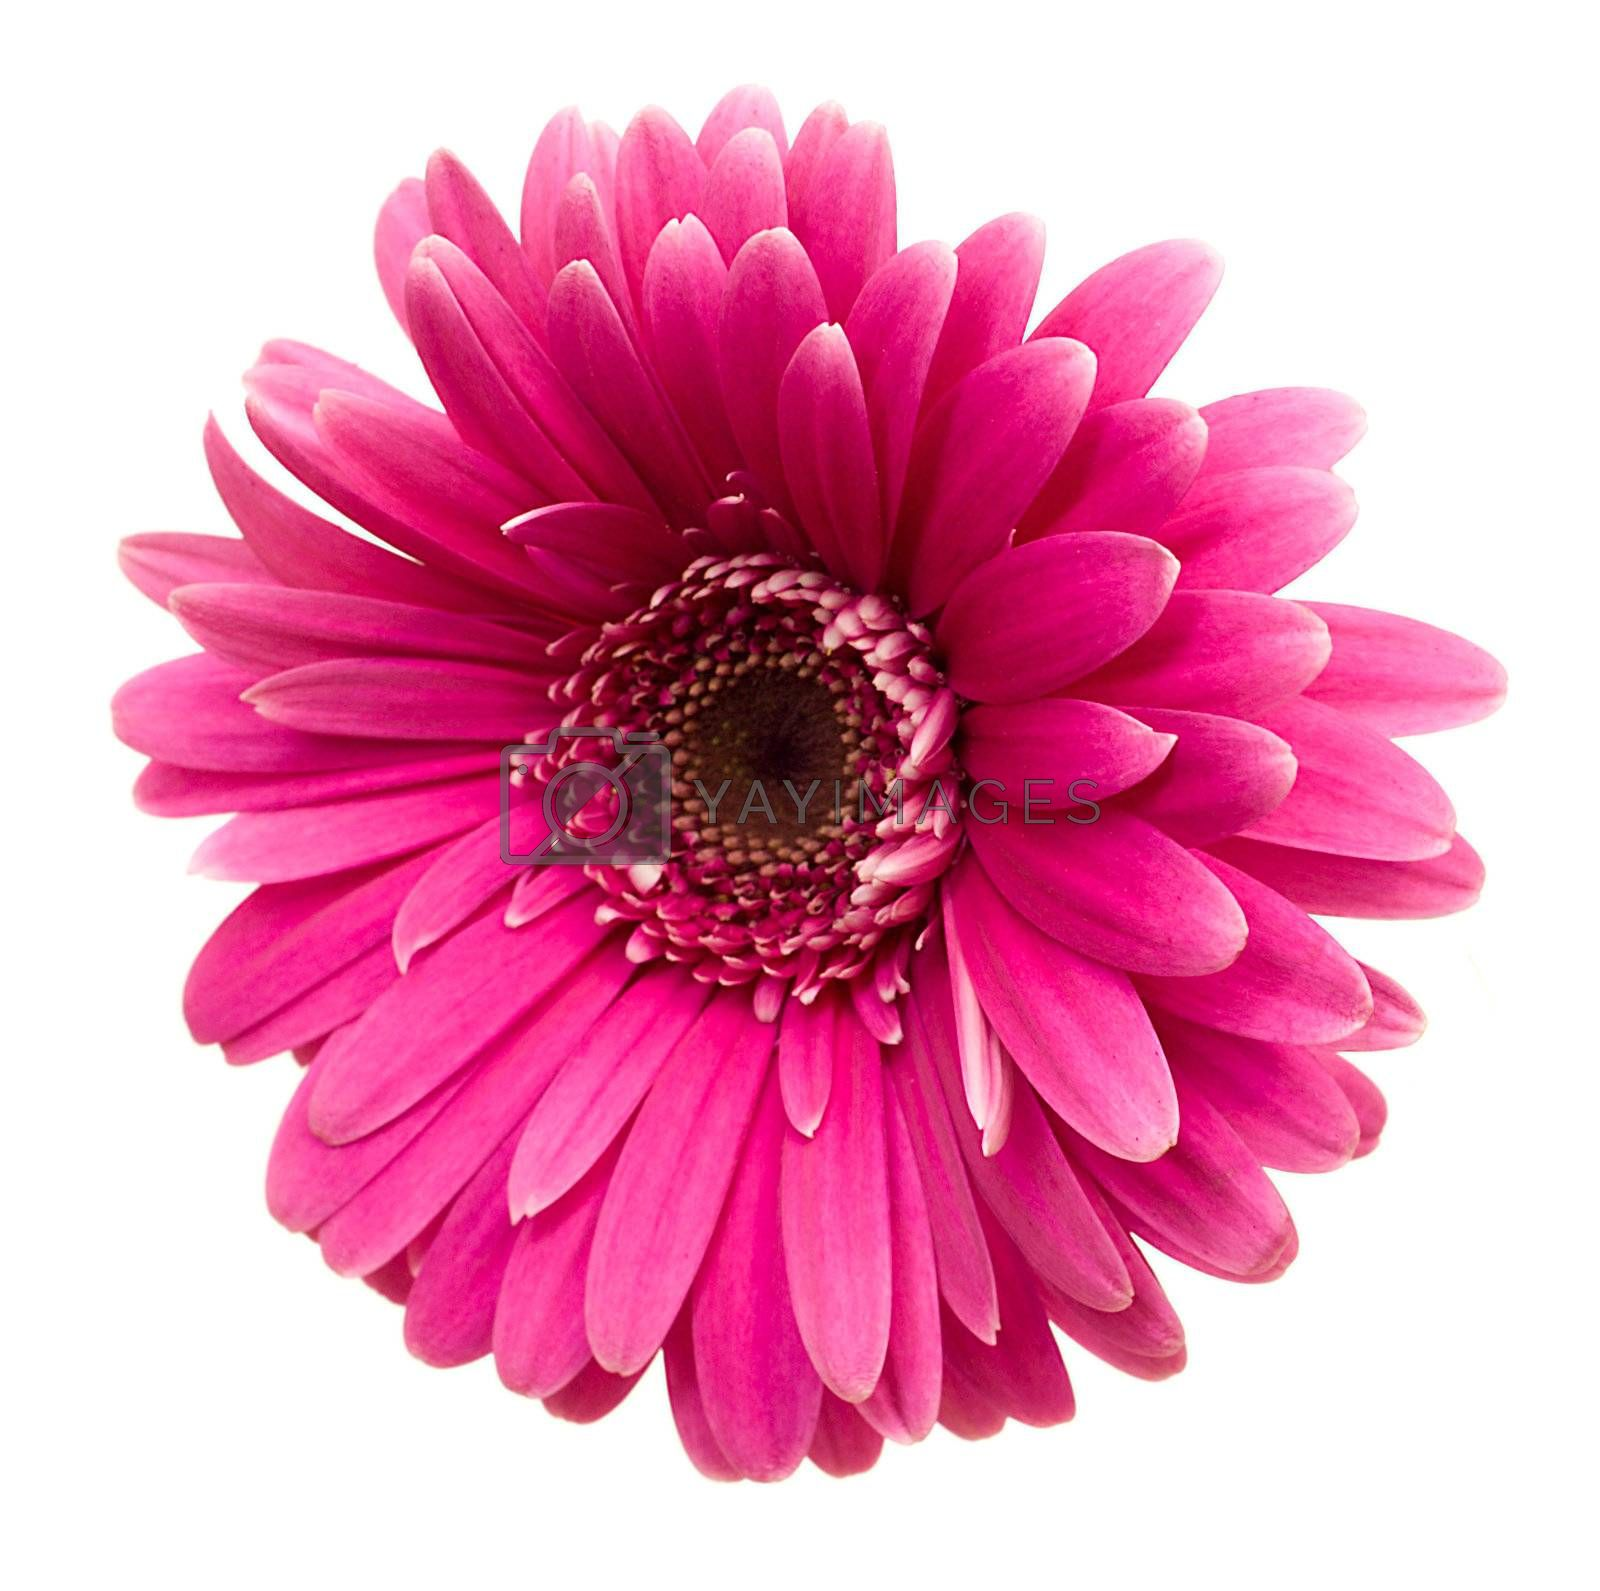 close-up single pink gerbera, isolated on white